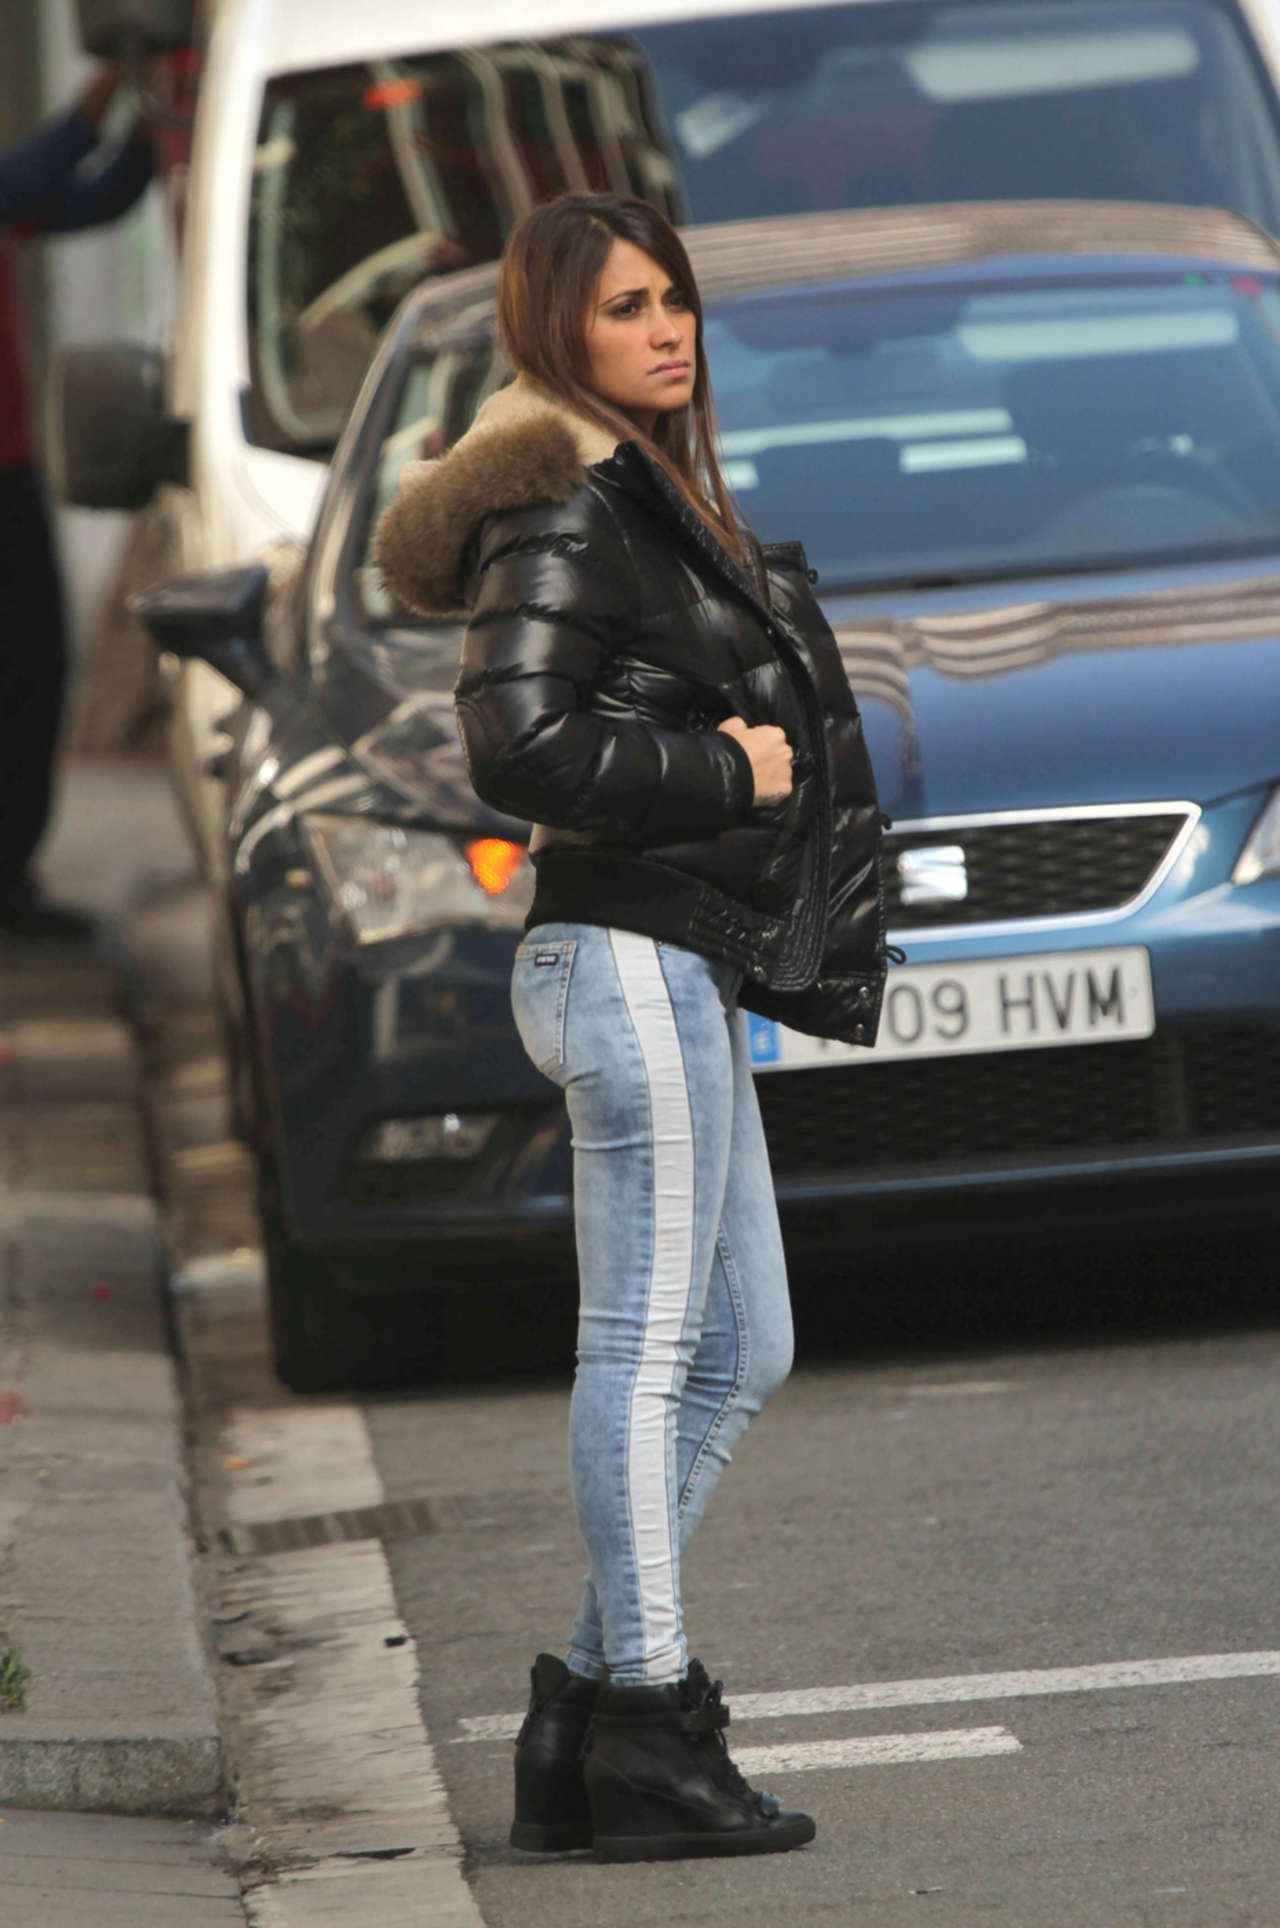 antonella roccuzzo hot in tight jeans02 gotceleb